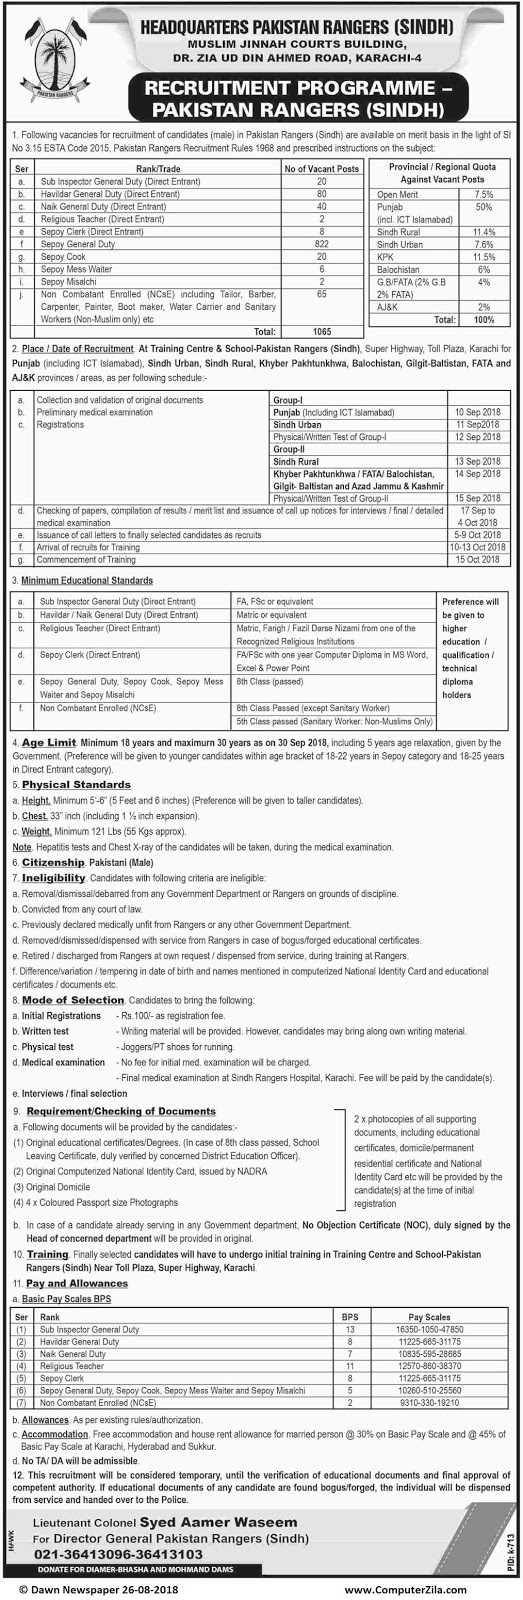 Recruitment Programme at Pakistan Rangers (Sindh)